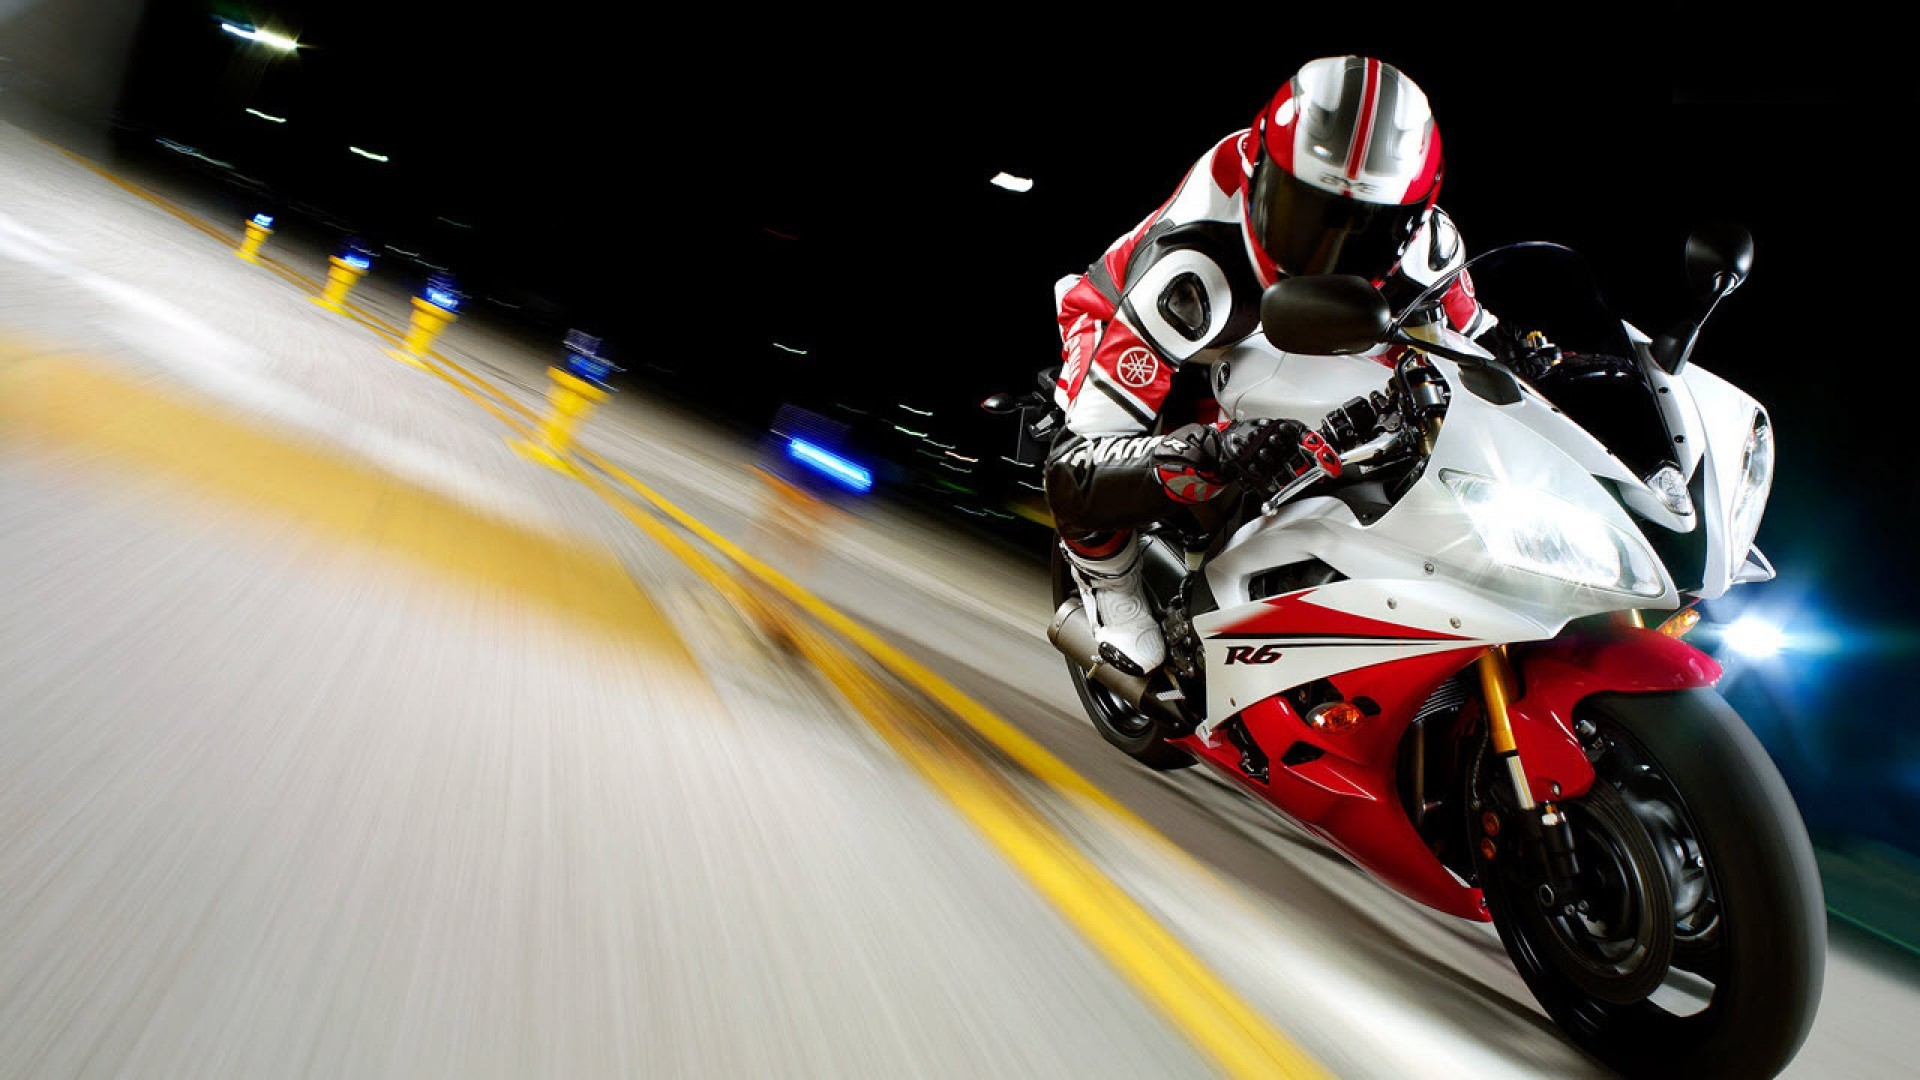 Res: 1920x1080, Motorcycle Wallpapers HD.